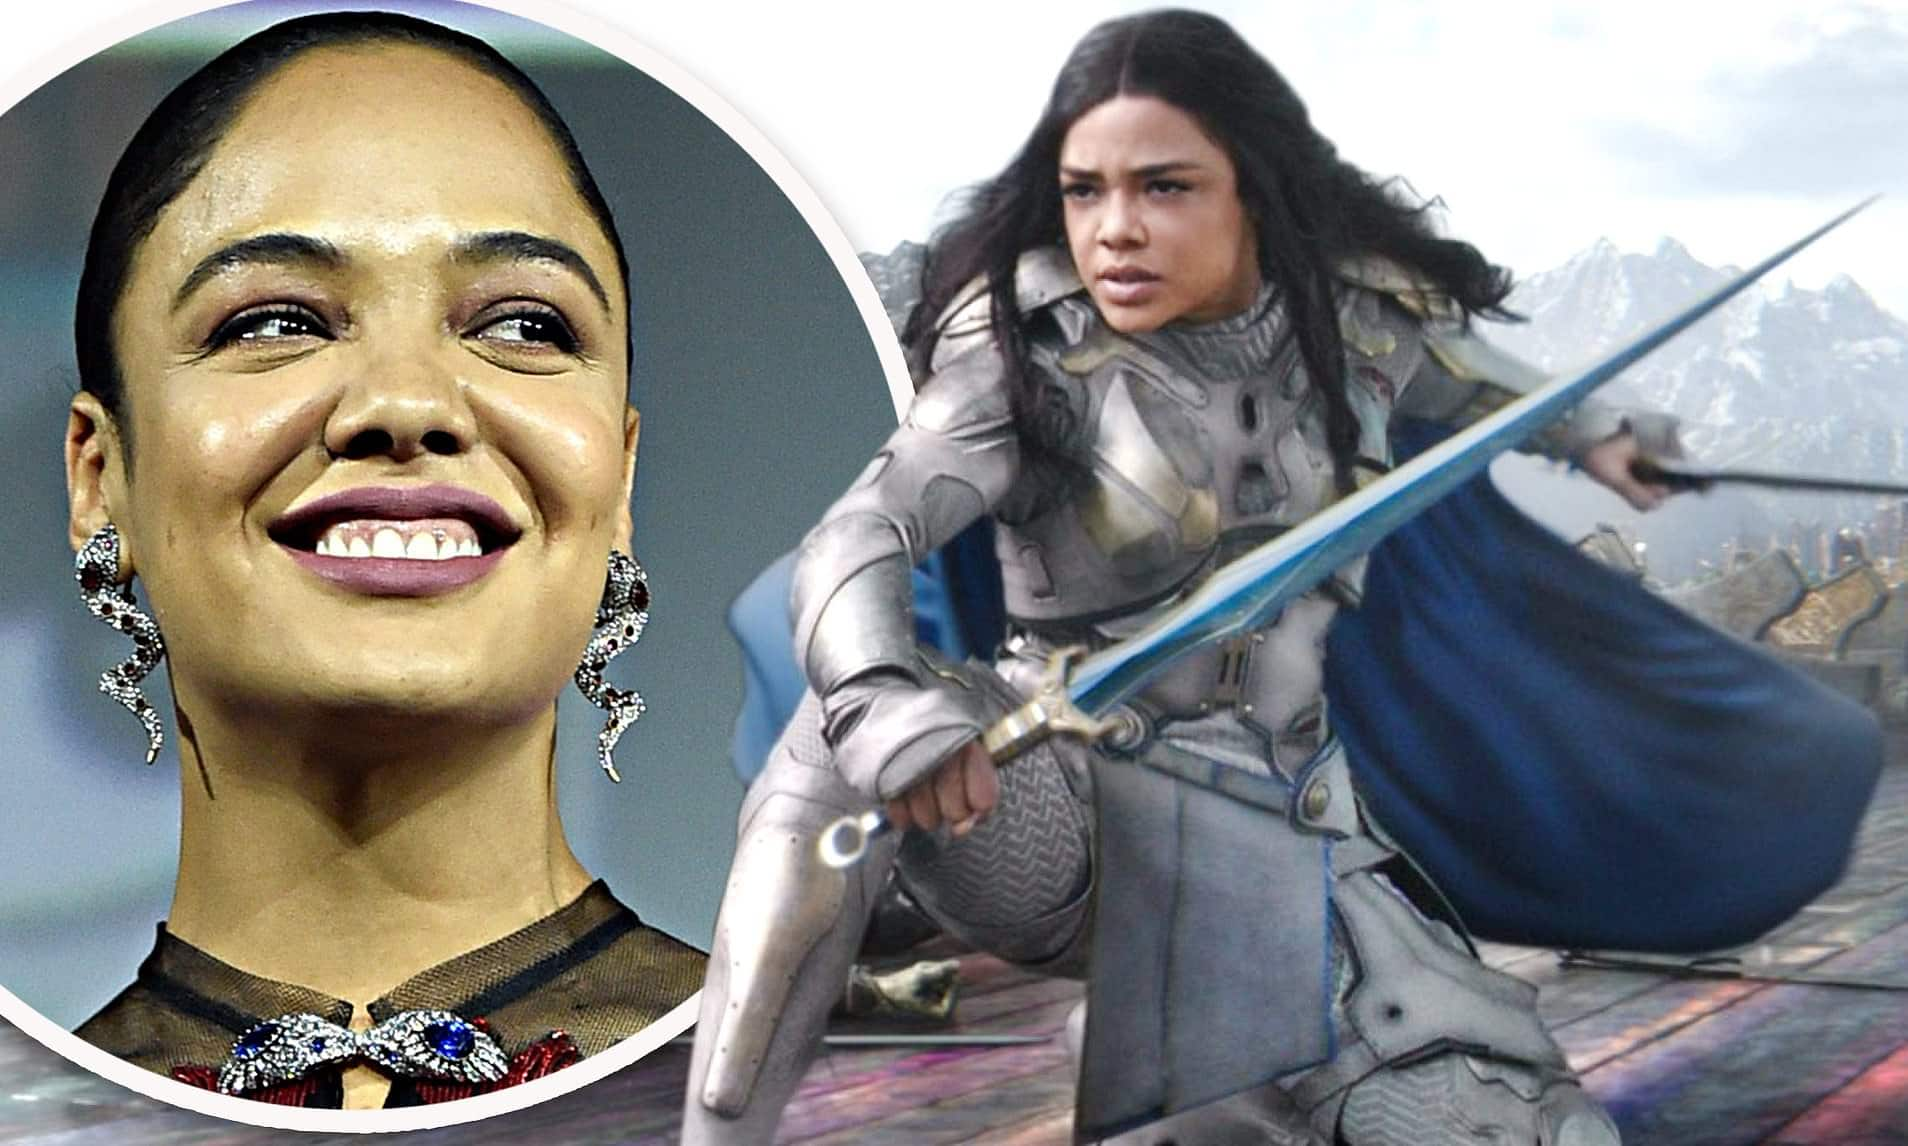 Kevin Feige Talks About Valkyrie's LGBTQ Storyline In